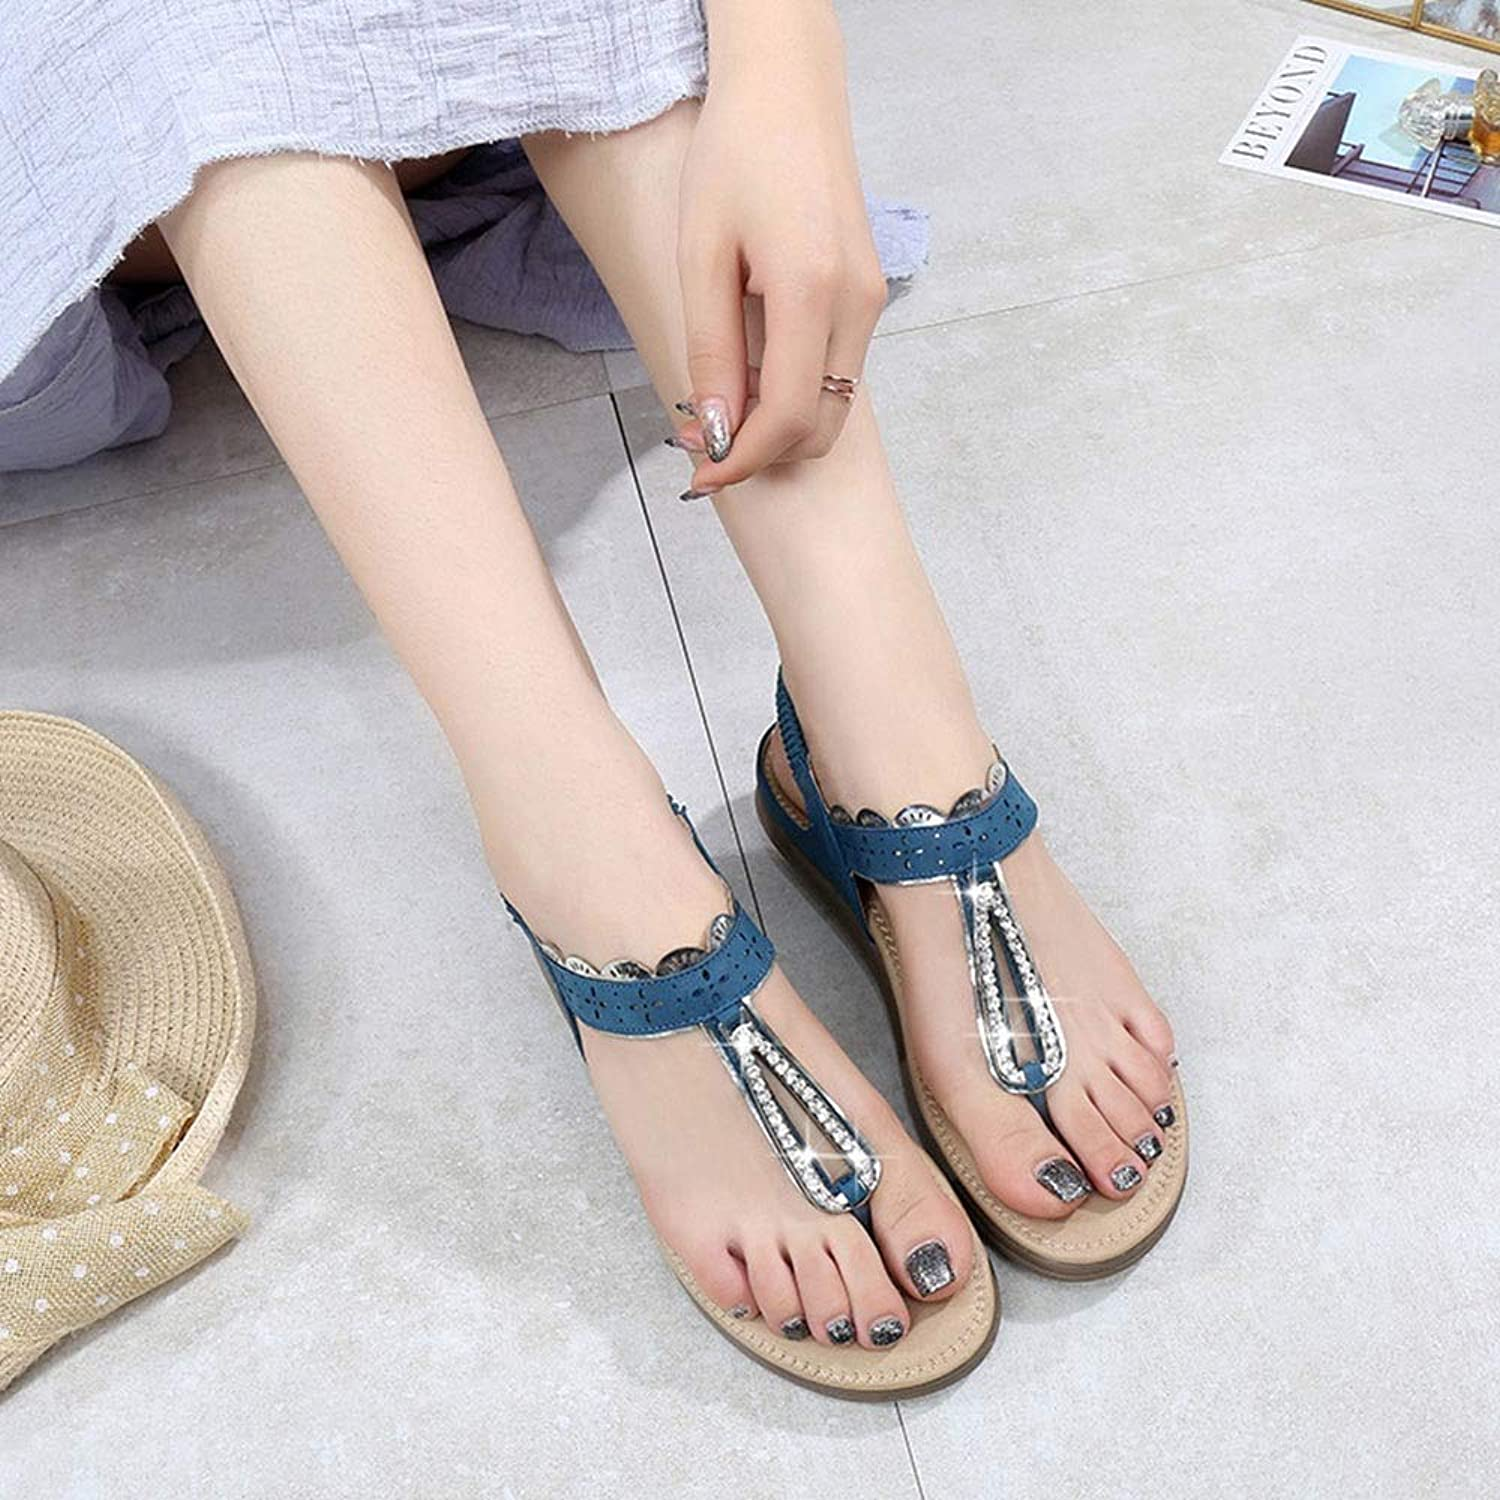 WENNEW Internal Style Sandals Flat shoes Rhinestone Vacuous shoes